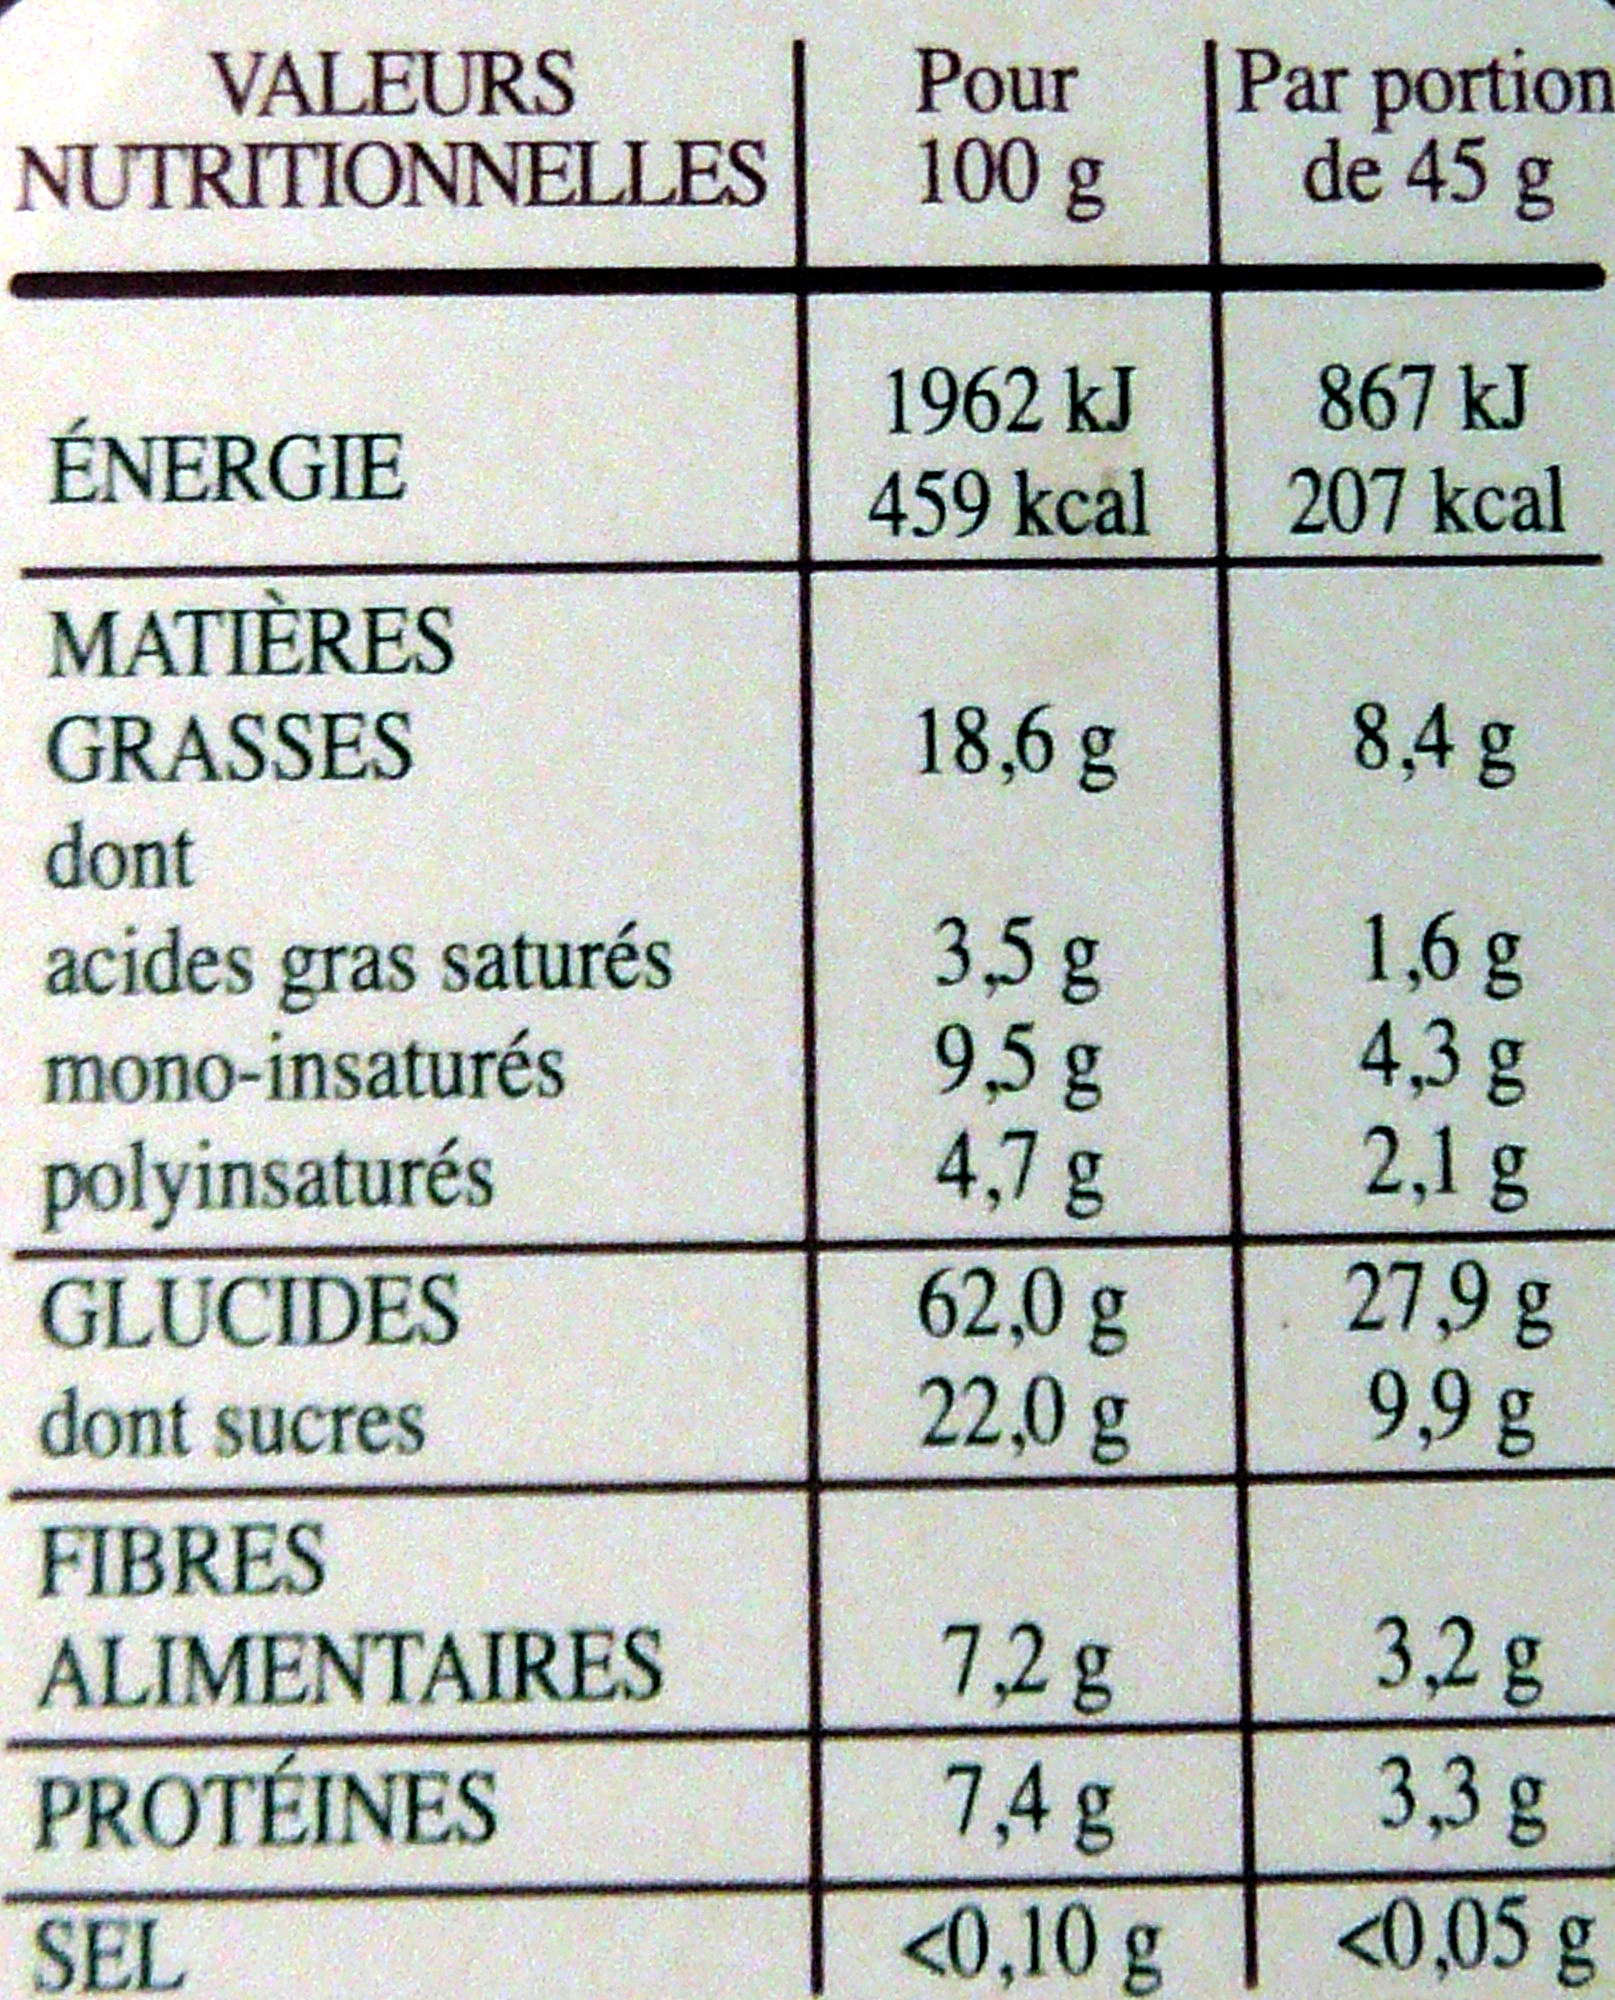 Country Crisp Sirop d'Erable & Noix de Pécan - Nutrition facts